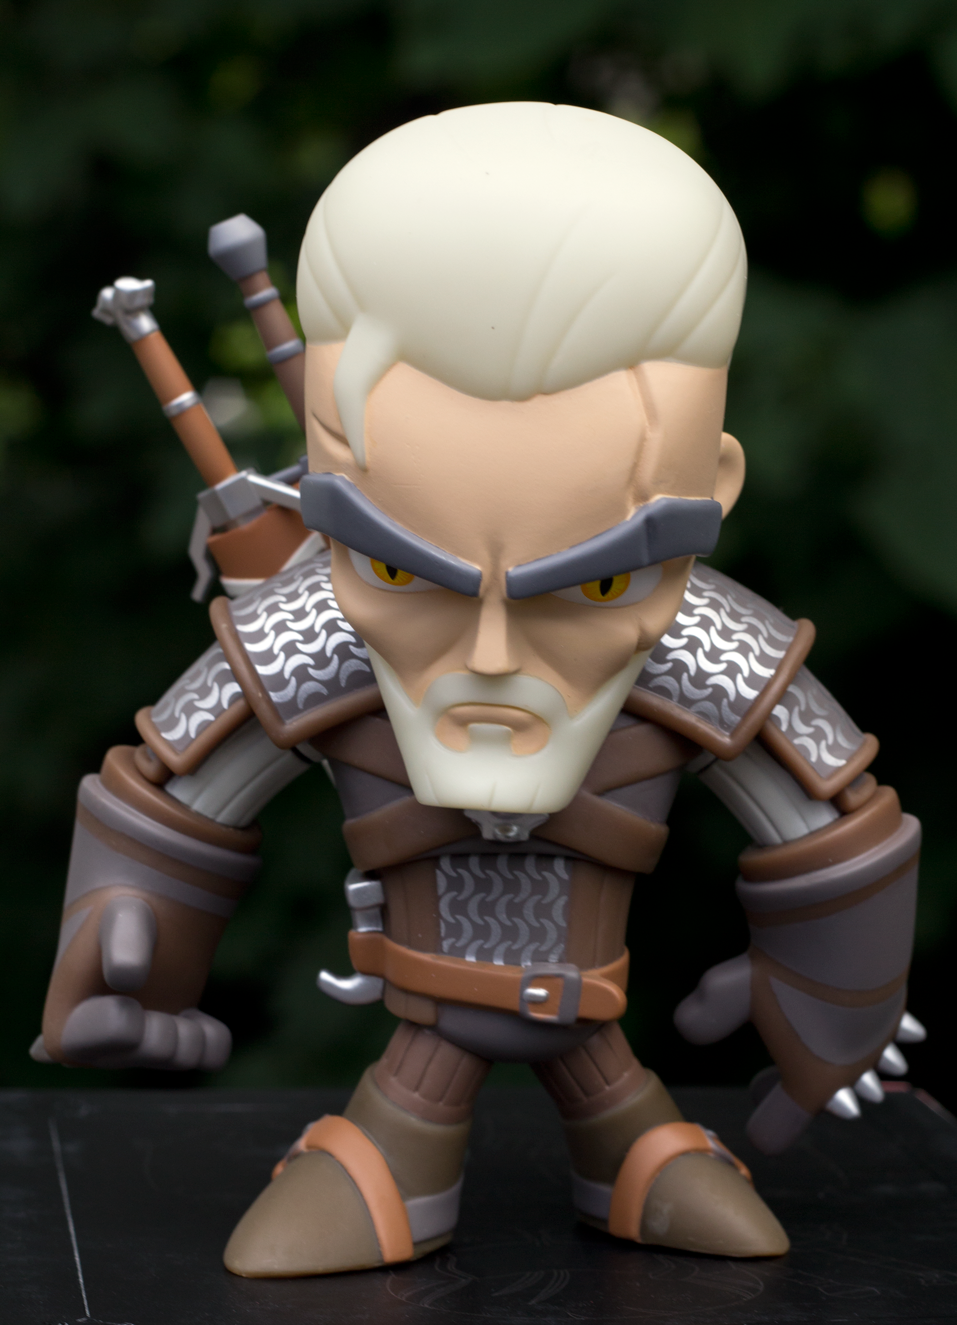 Witcher 3 Geralt Figure By J Nx Review Clutter Magazine